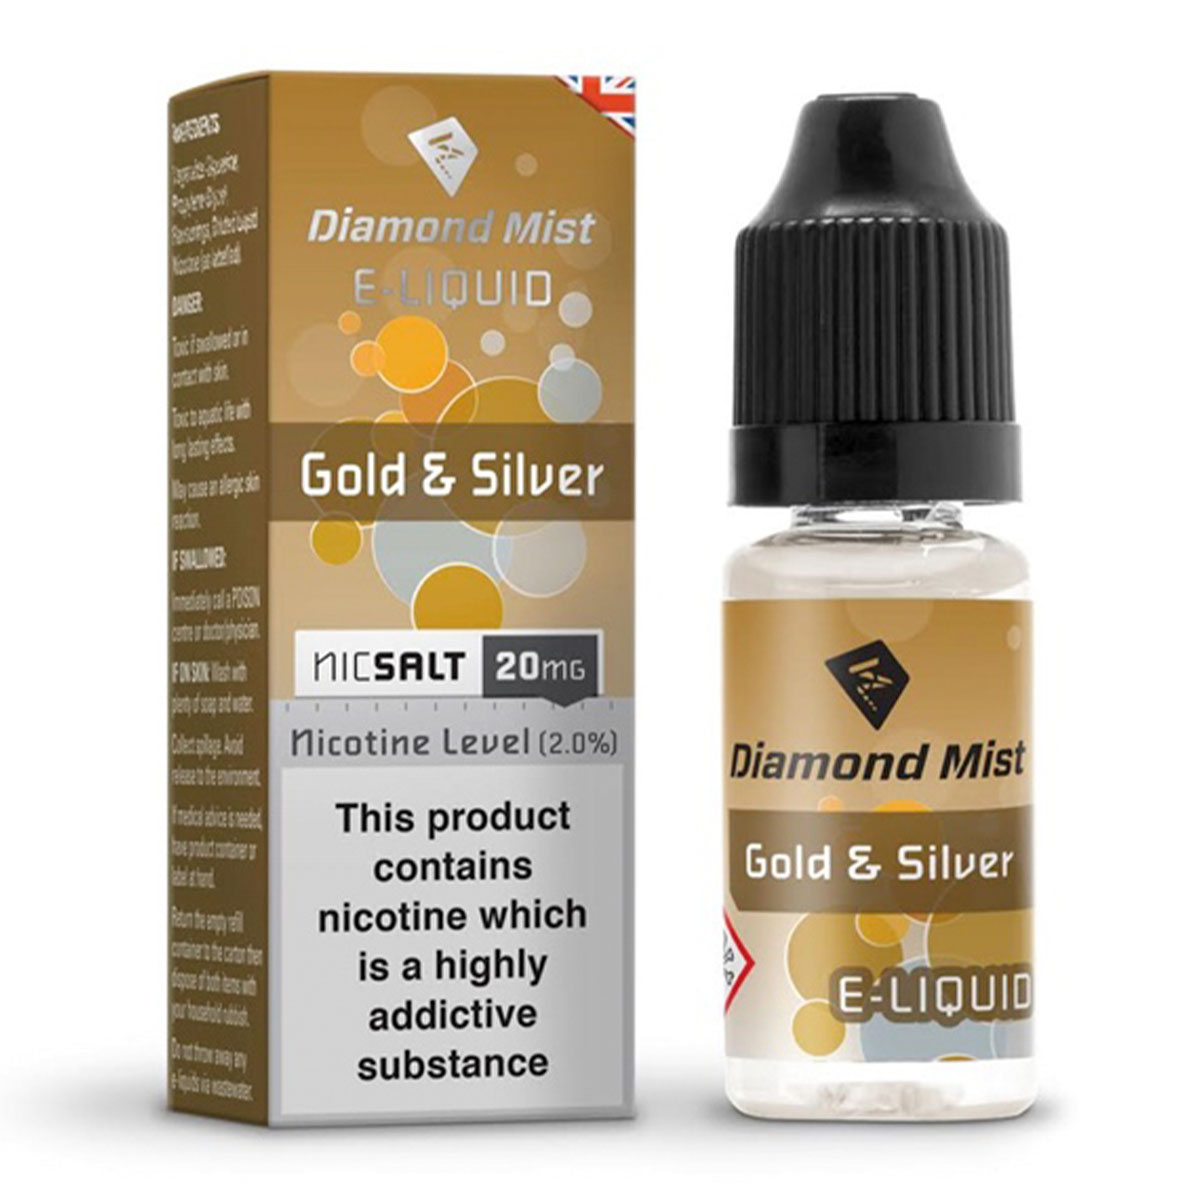 GOLD & SILVER NIC SALT BY DIAMOND MIST